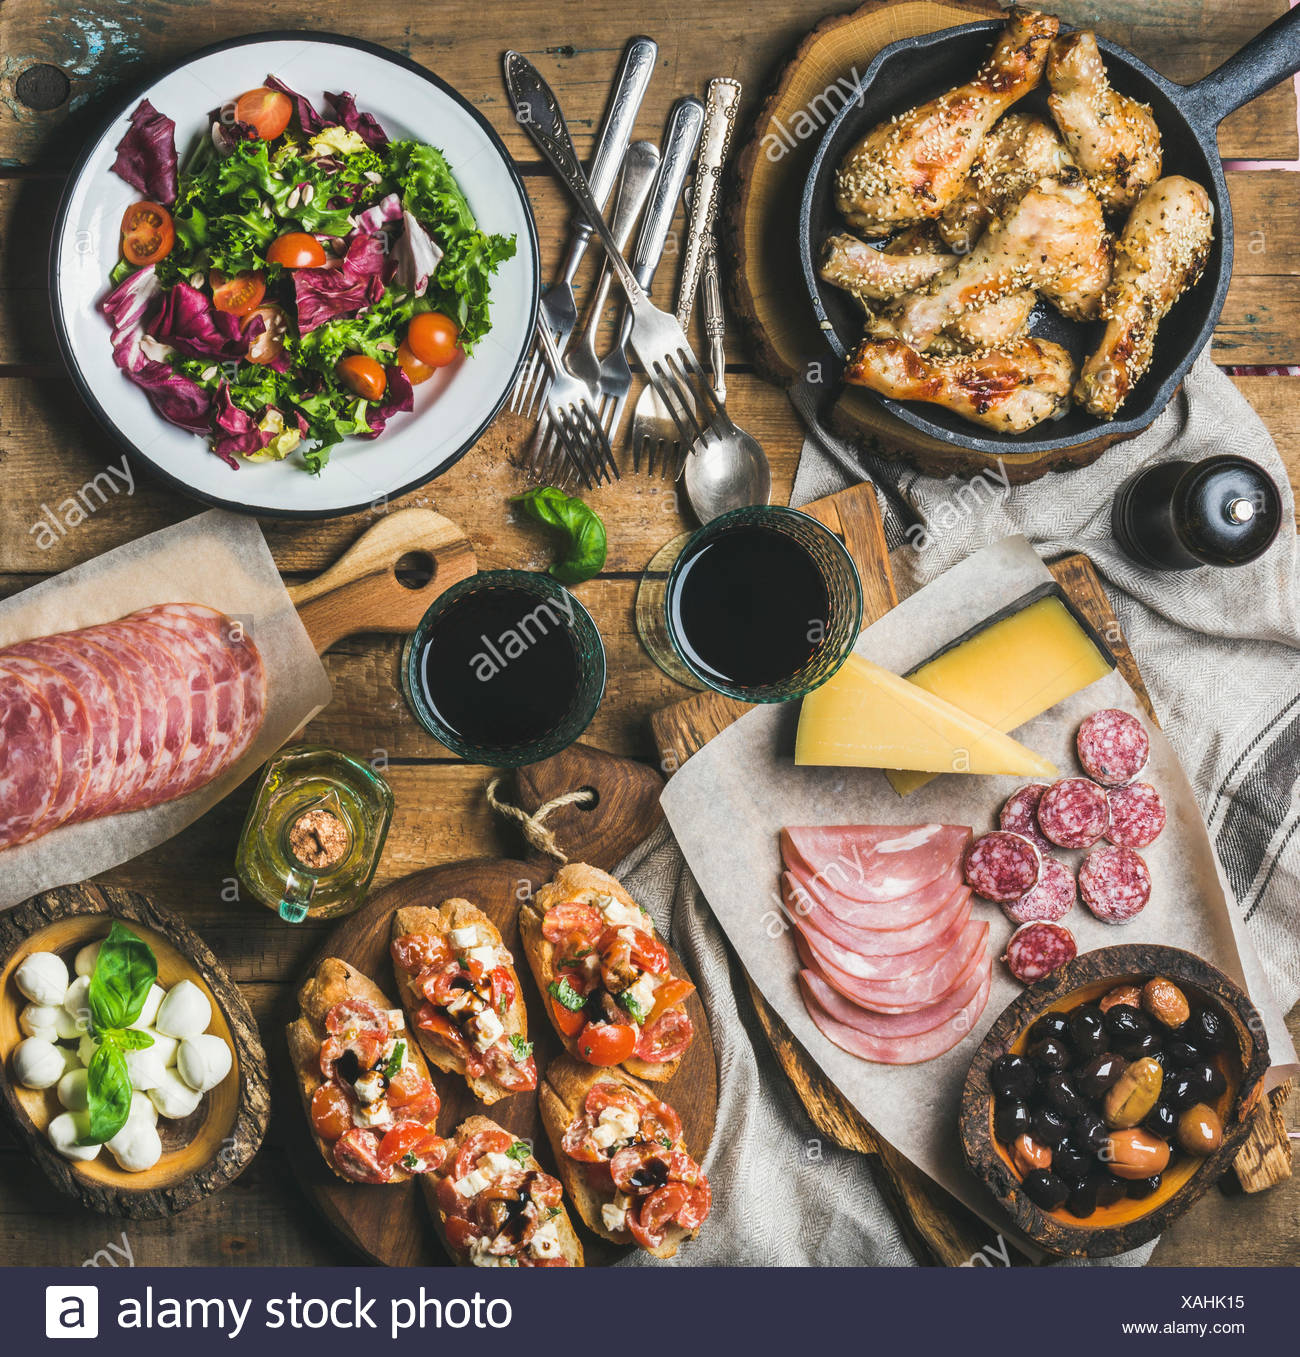 Home dinner, party table arrangement. Rustic table set with salad, olives, chicken, tomato, feta cheese brushettas, snacks and red wine, top view. Slo - Stock Image